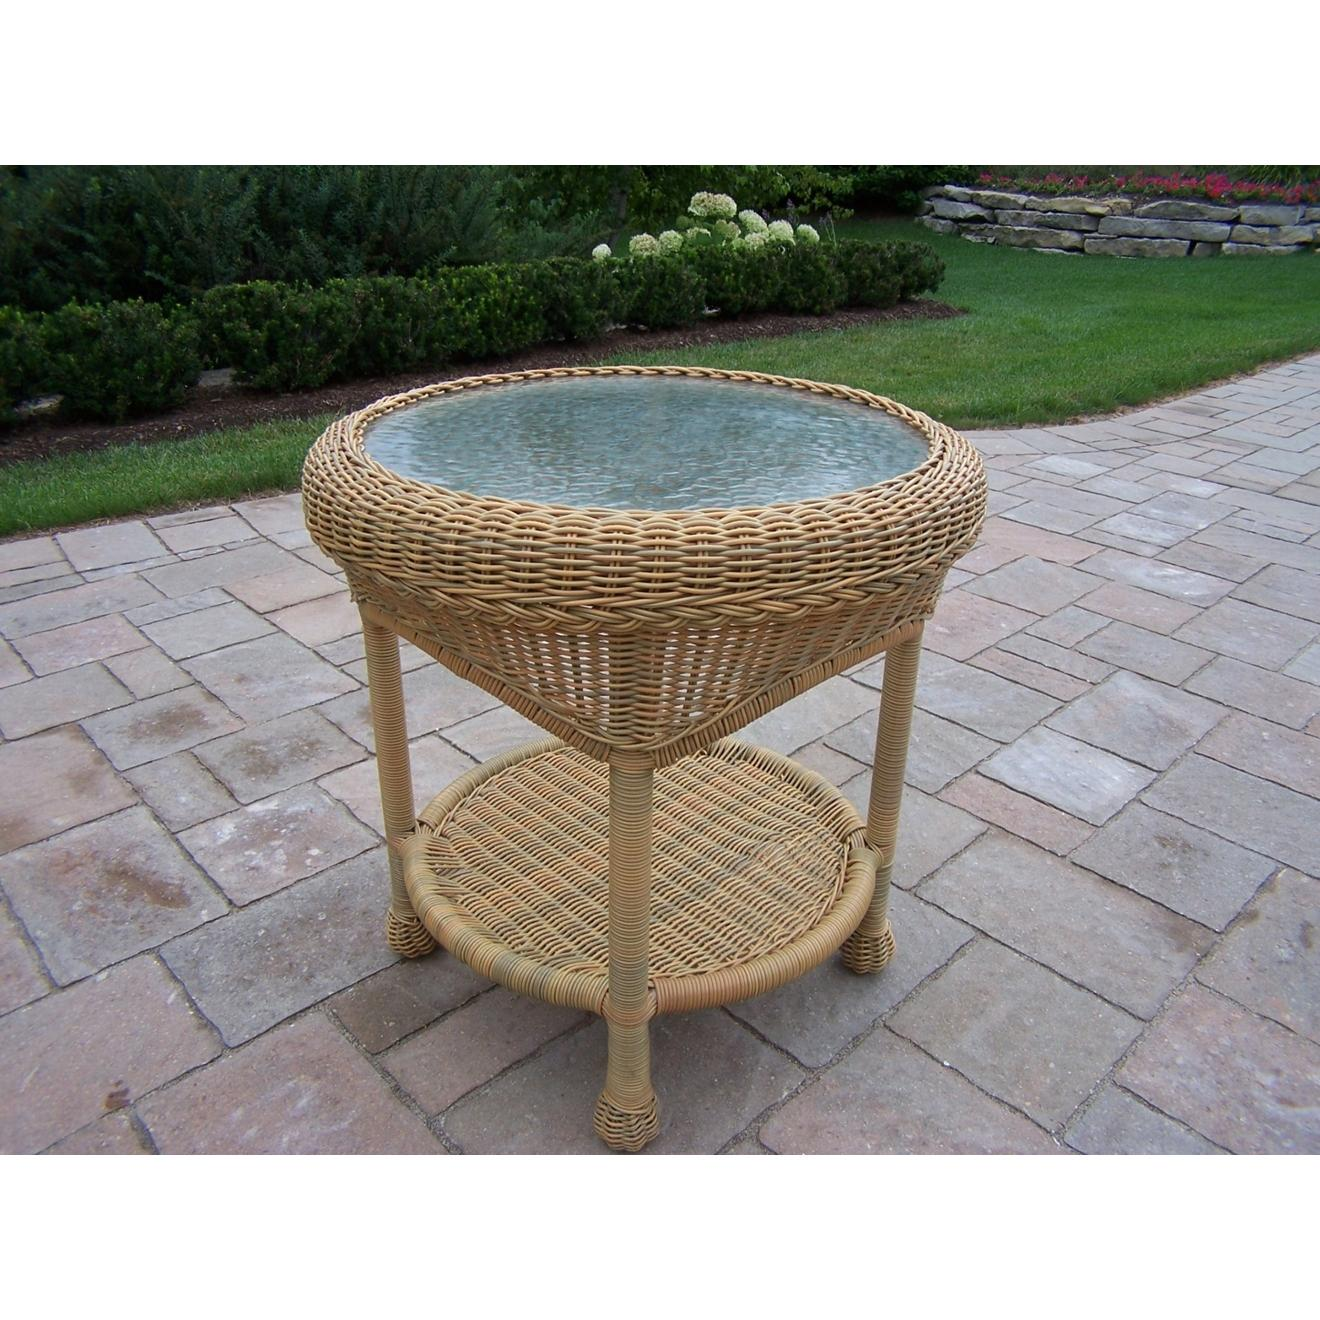 Oakland Living Resin Wicker End Table - Honey